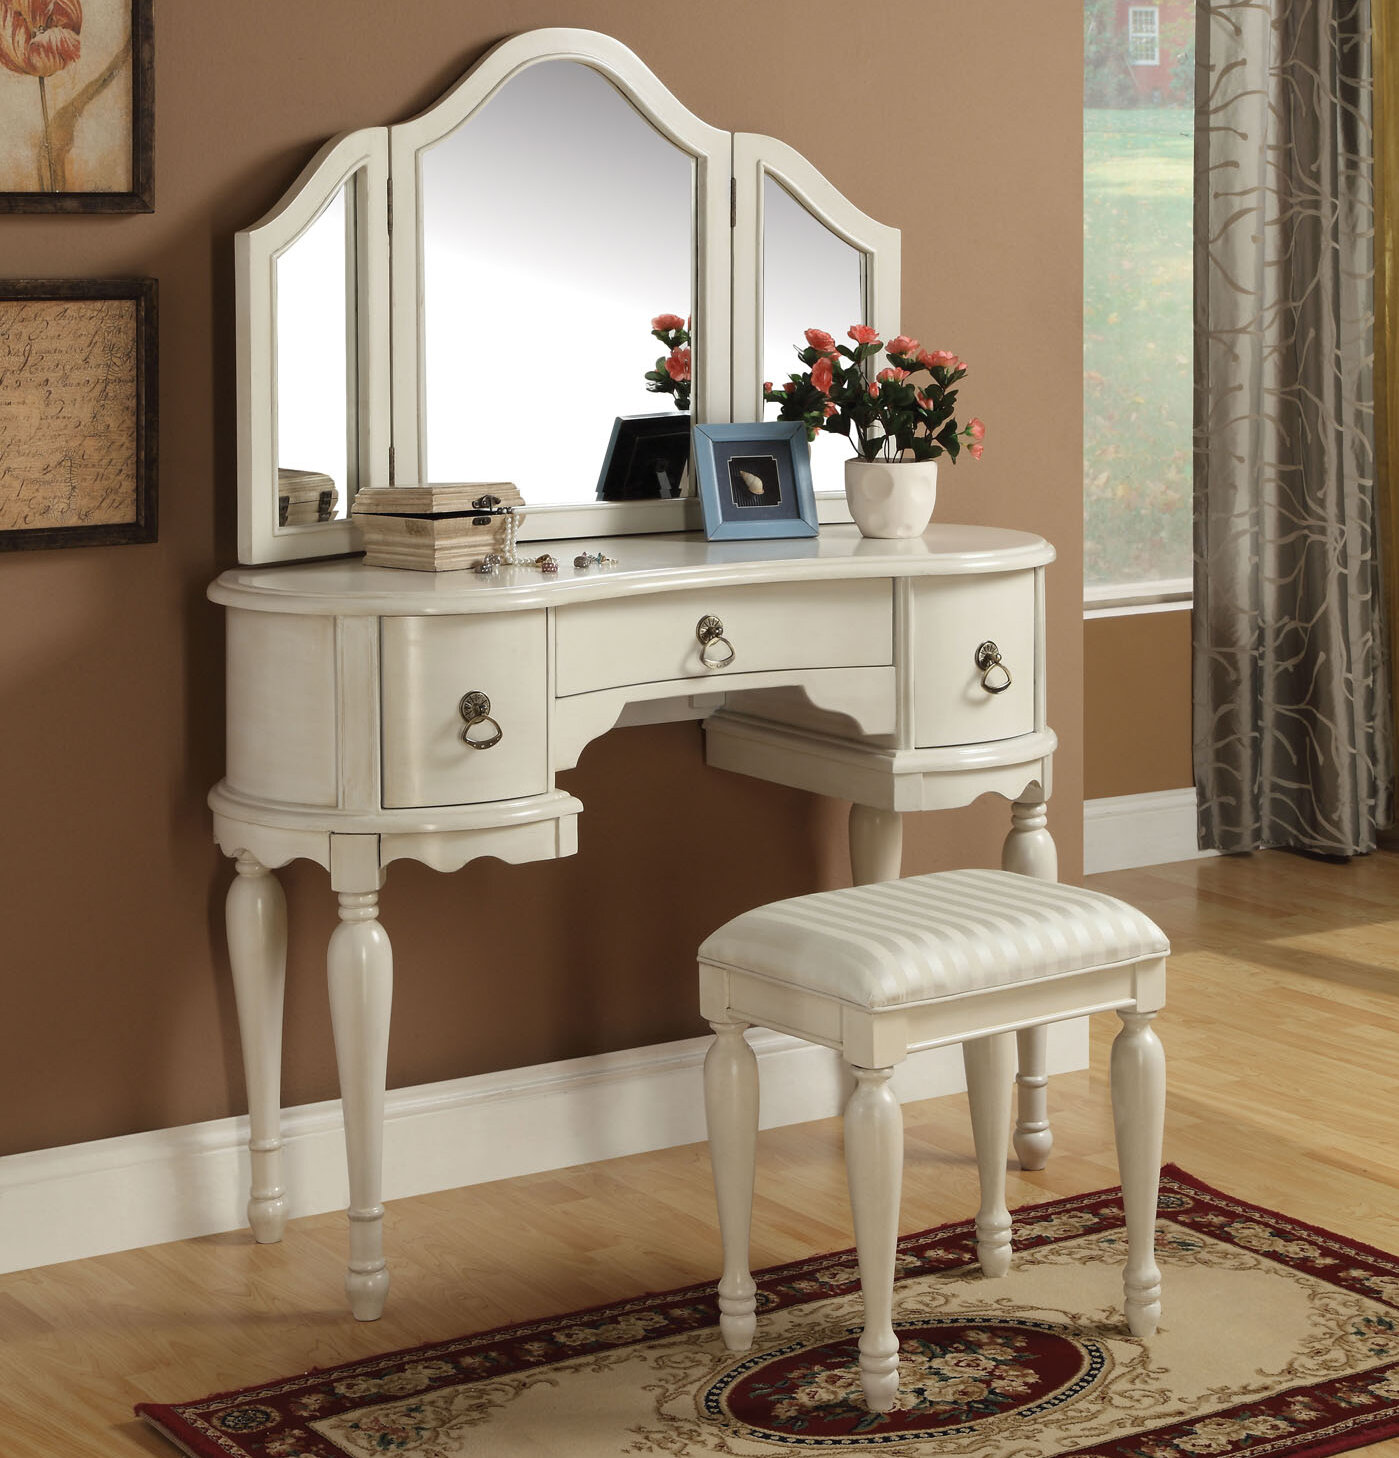 Merveilleux Infini Furnishings Makeup Vanity Set With Mirror U0026 Reviews | Wayfair